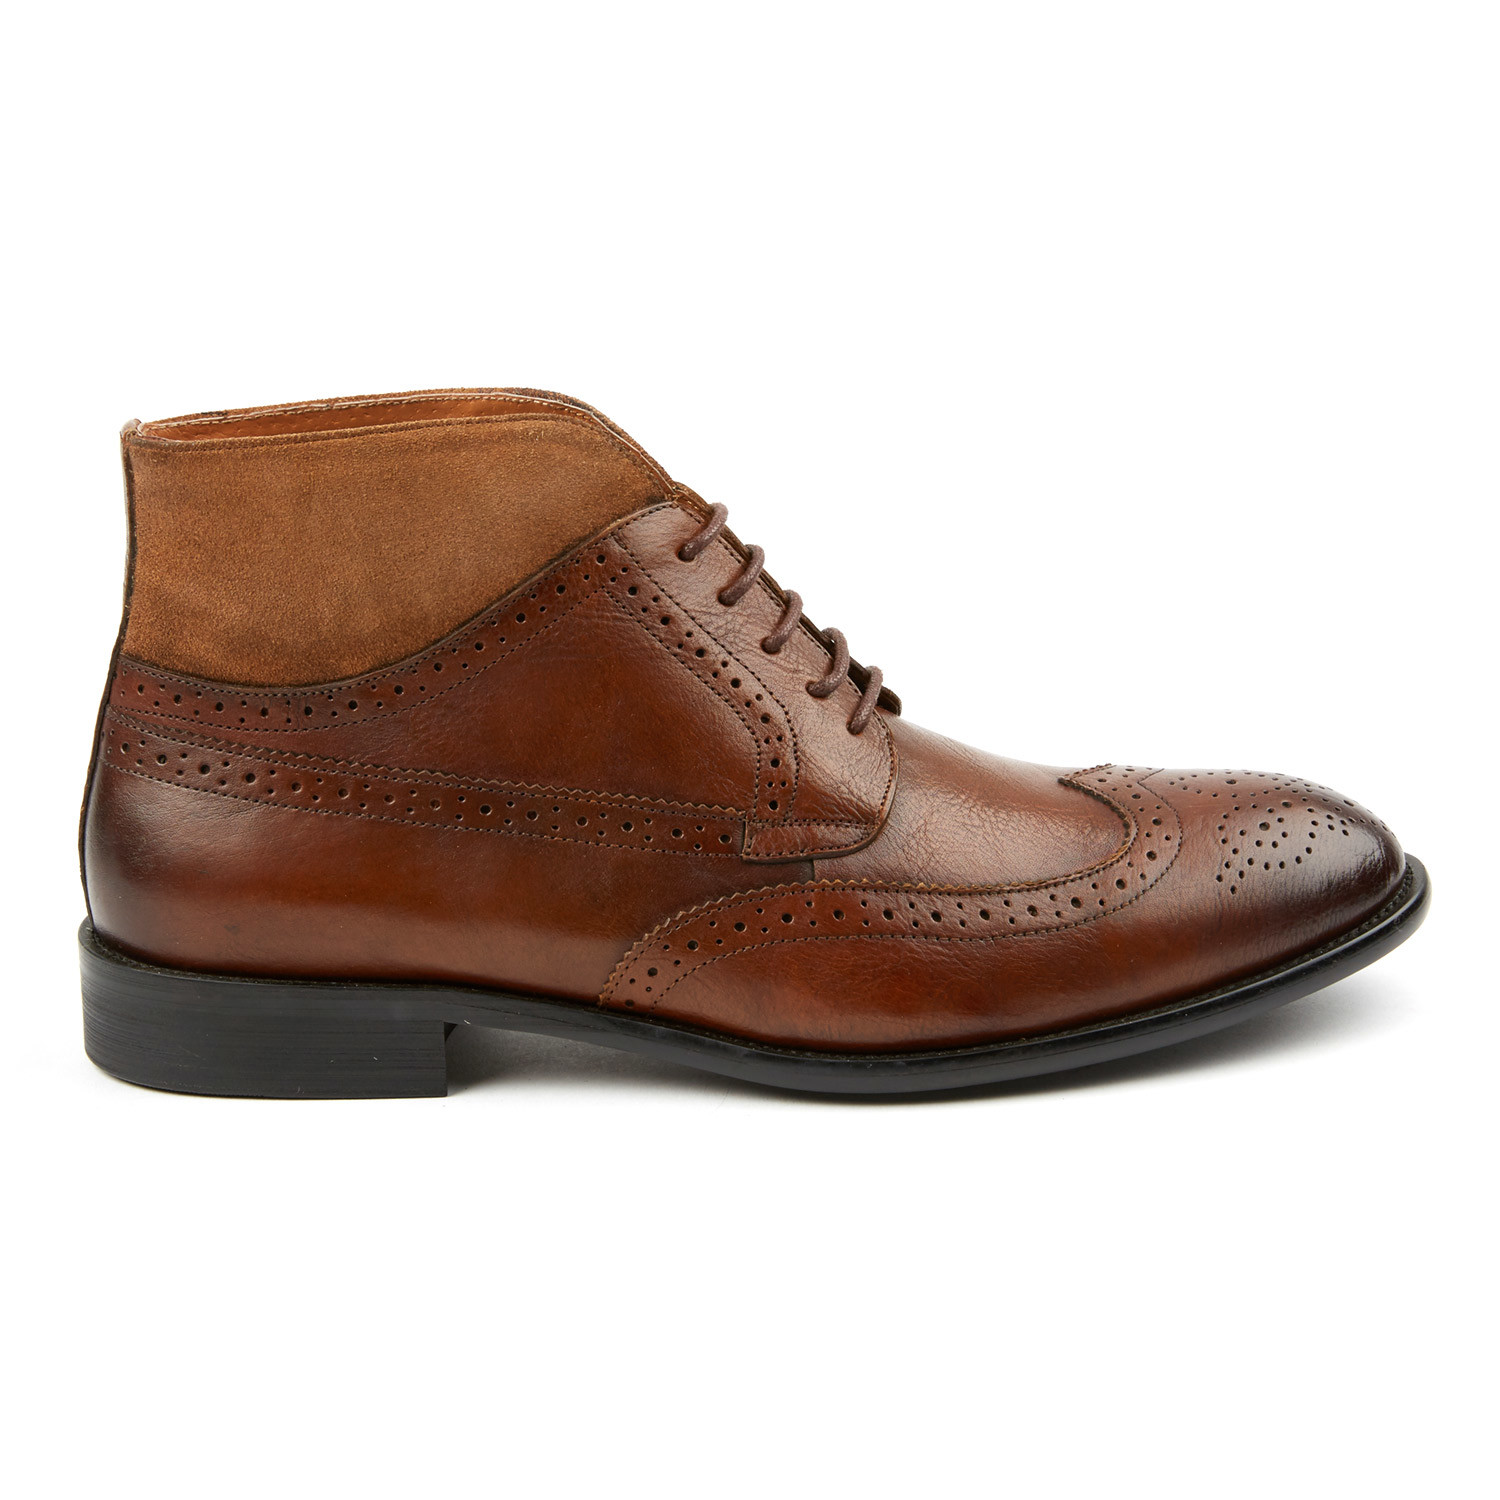 for sale very cheap explore for sale Vintage Foundry Graham Lack Up Boot pictures sale online ruNXhTKA